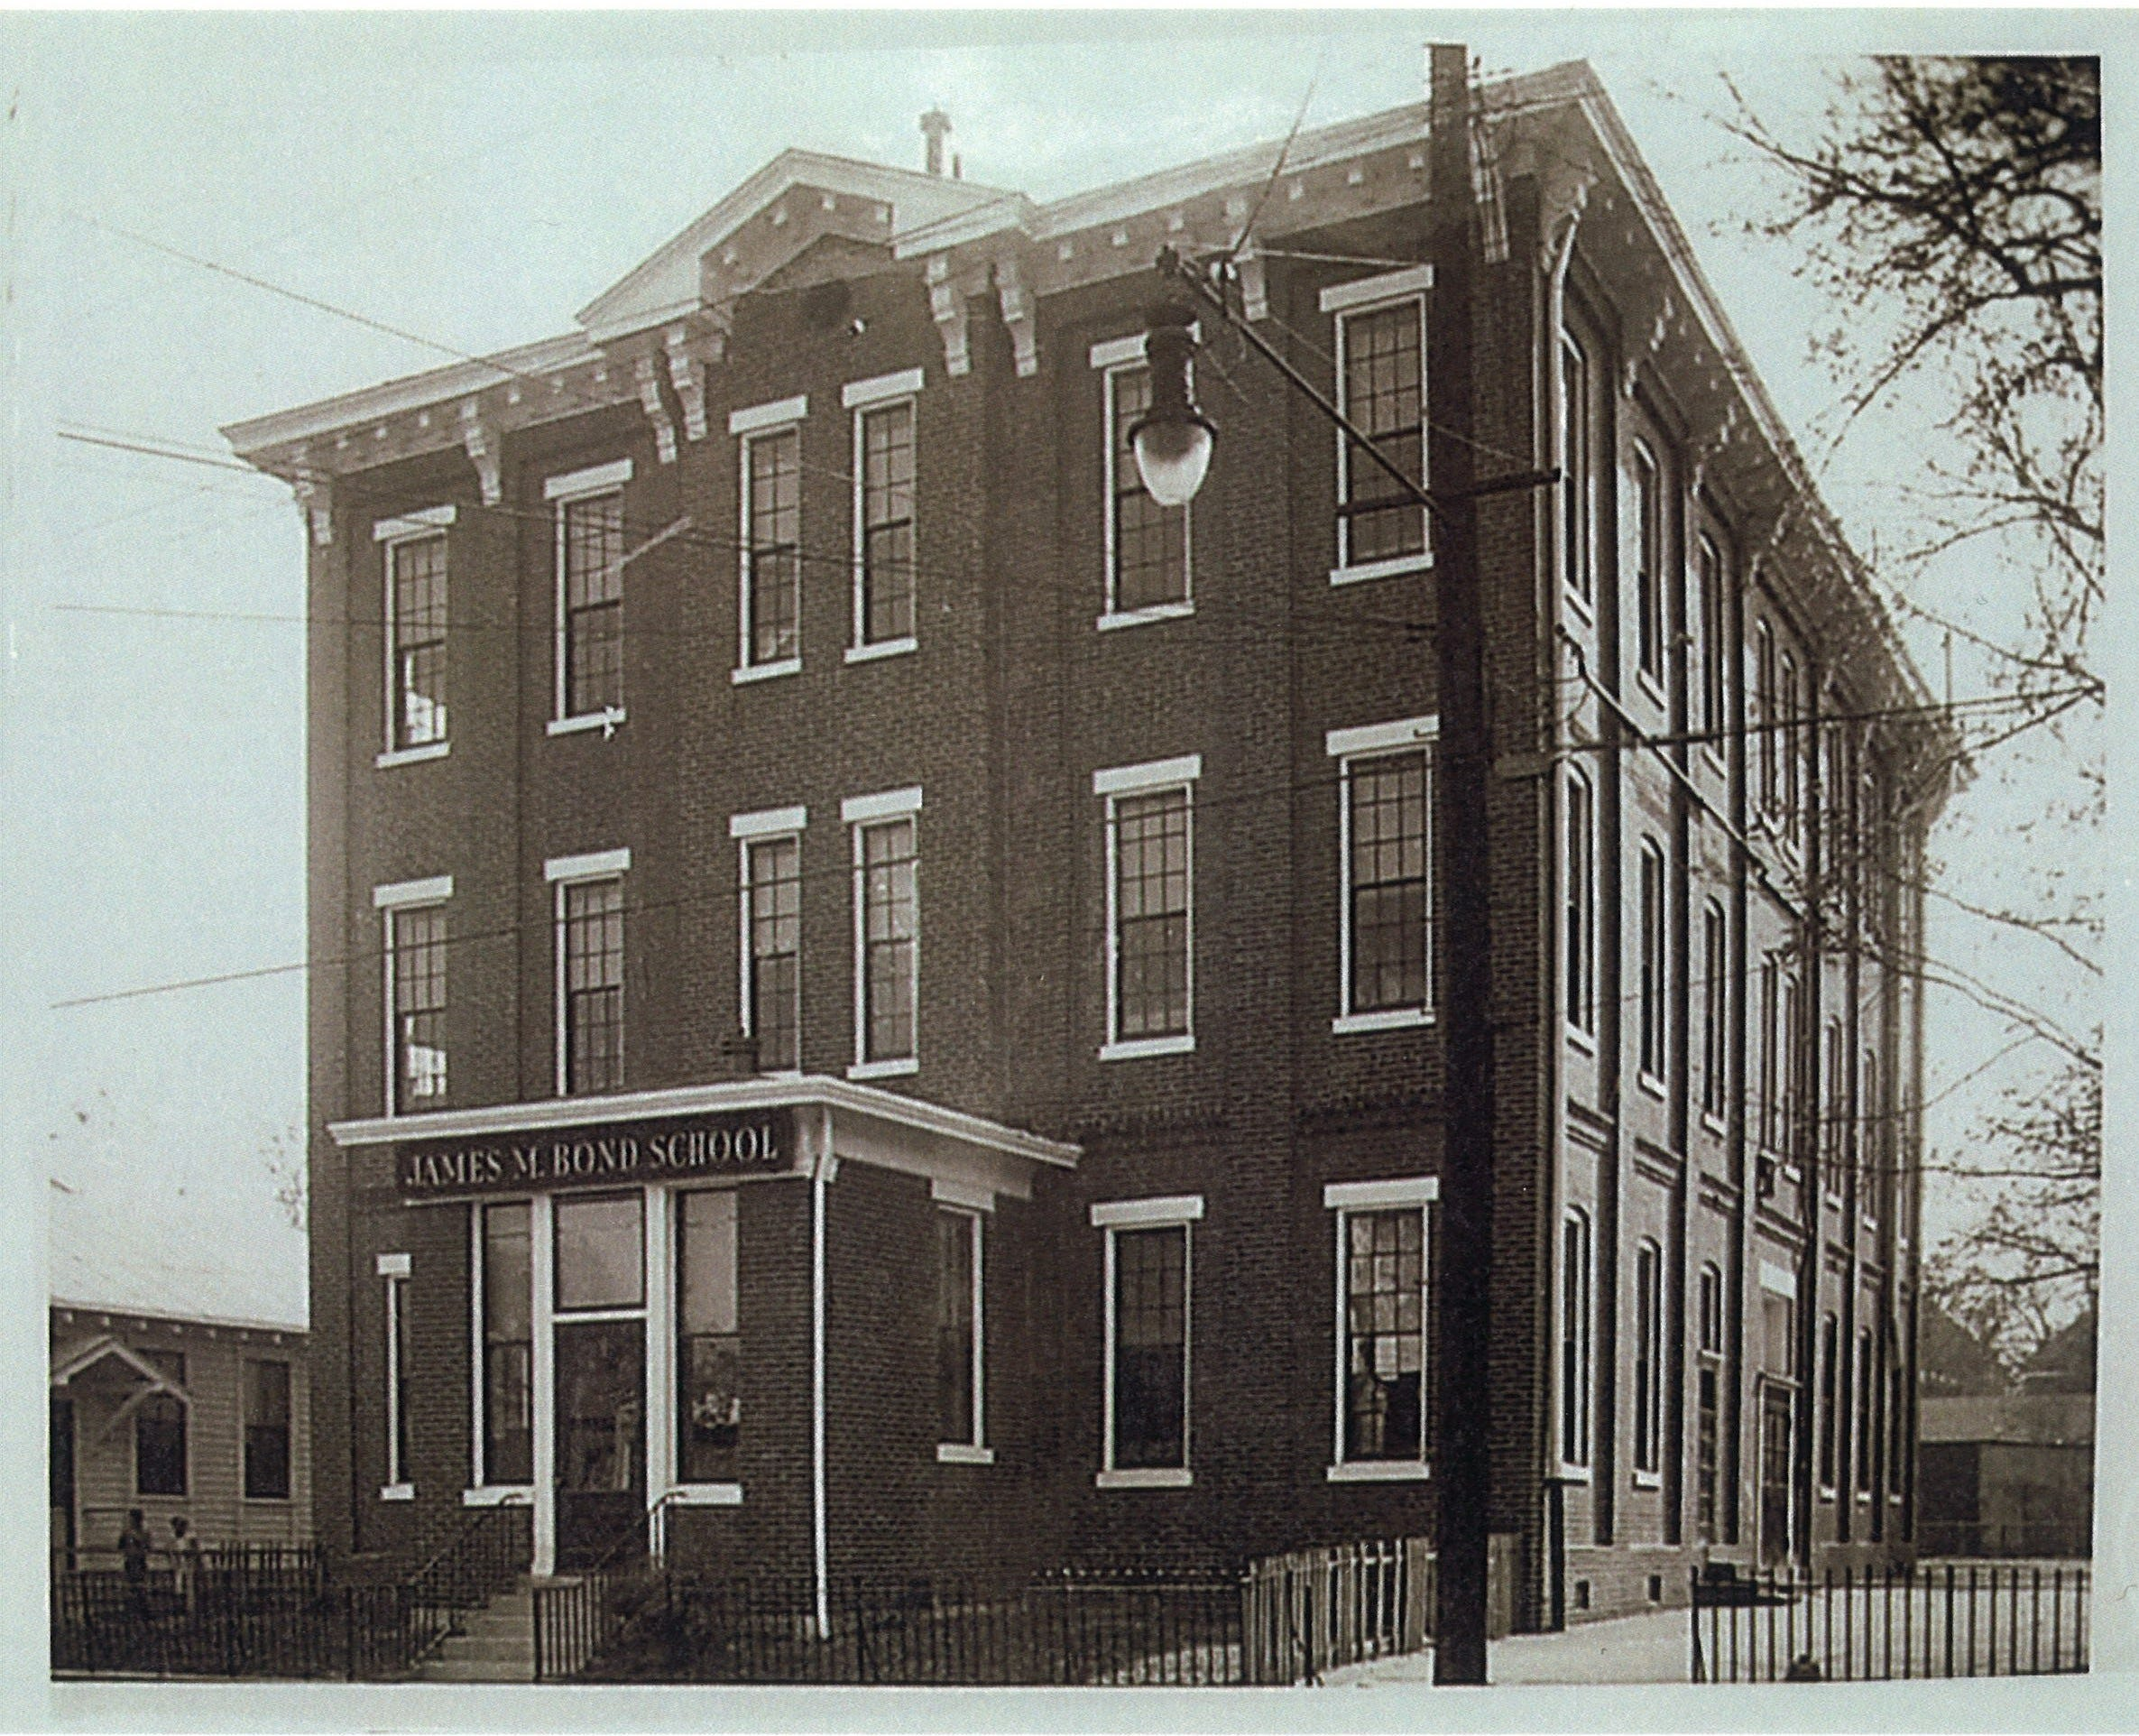 The James M. Bond School once stood at 2300 Cedar St. in west Louisville. The school, which closed in 1960, was named after a Black Kentuckian who devoted his life to advancing civil rights for African Americans, including access to quality education.